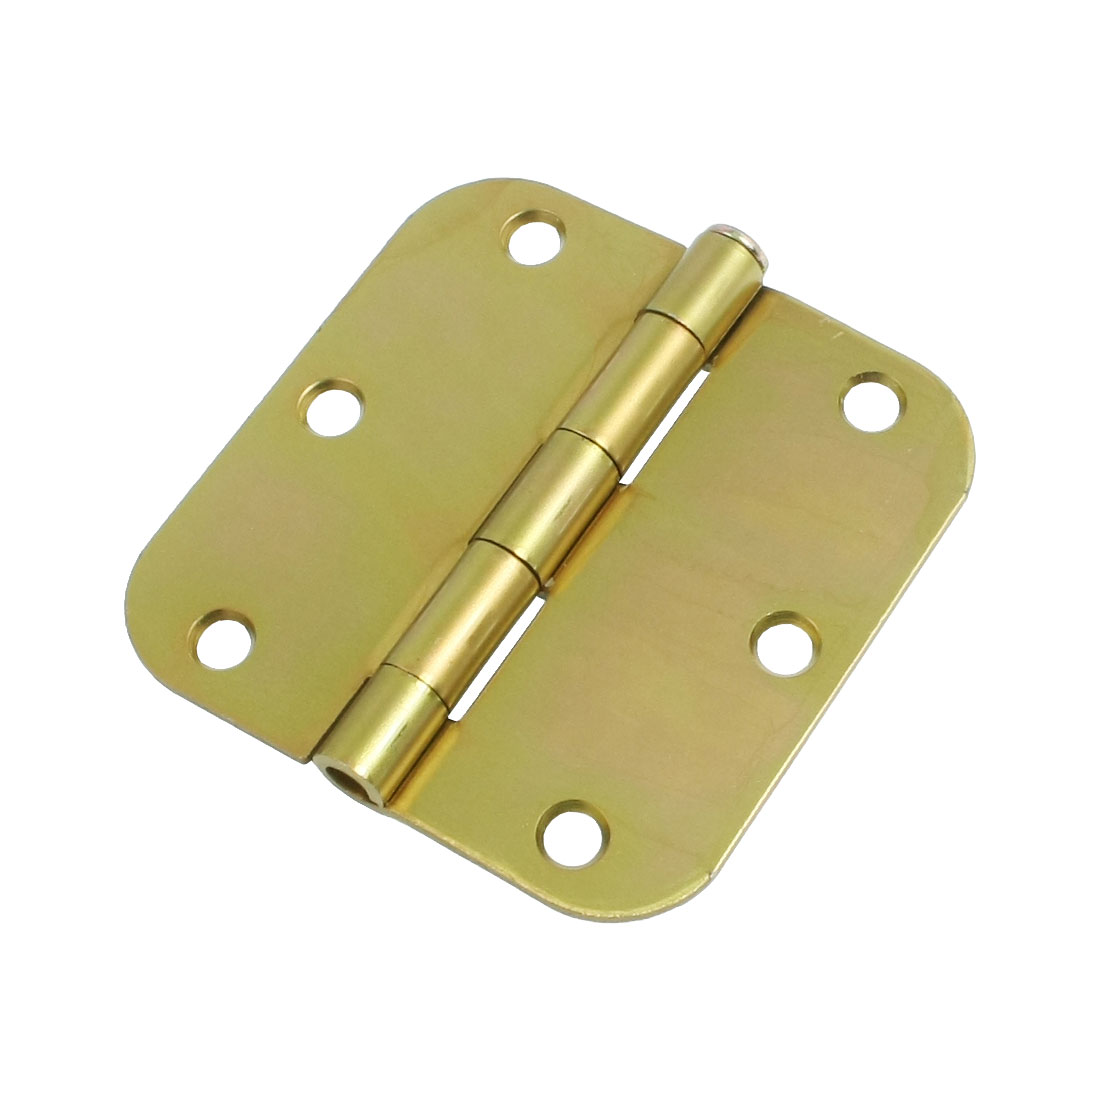 Gold Tone Metal Gate Door Cabinet Radius Hinge Hardware 3.5""